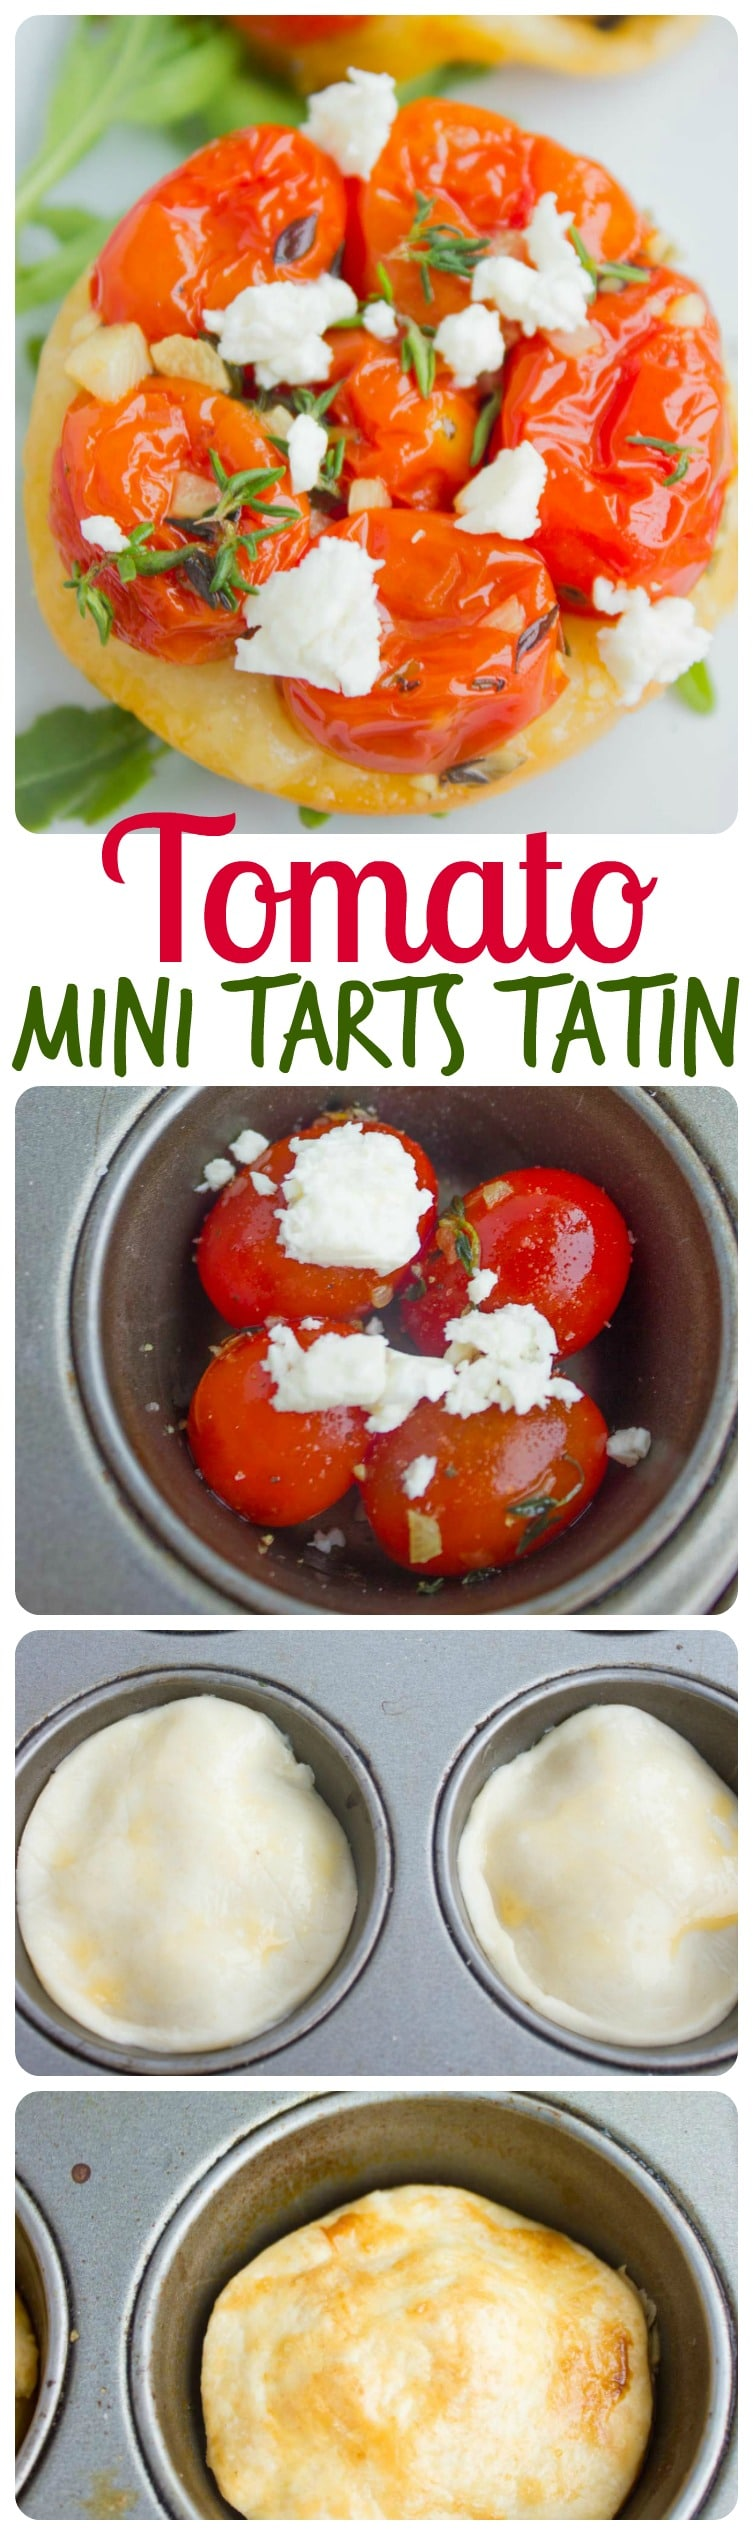 This easy Mini Tomato Tarts Tatin recipe is the perfect appetizer or finger food to impress your guests with! Tomatoes are sautéed with garlic, topped with salty feta and fresh thyme, and all covered in a flaky pie doughand baked in a muffin tin until golden crisp, softened and caramelized when flipped. #tartetatin, #appetizer, #frenchrecipes, #fingerfood